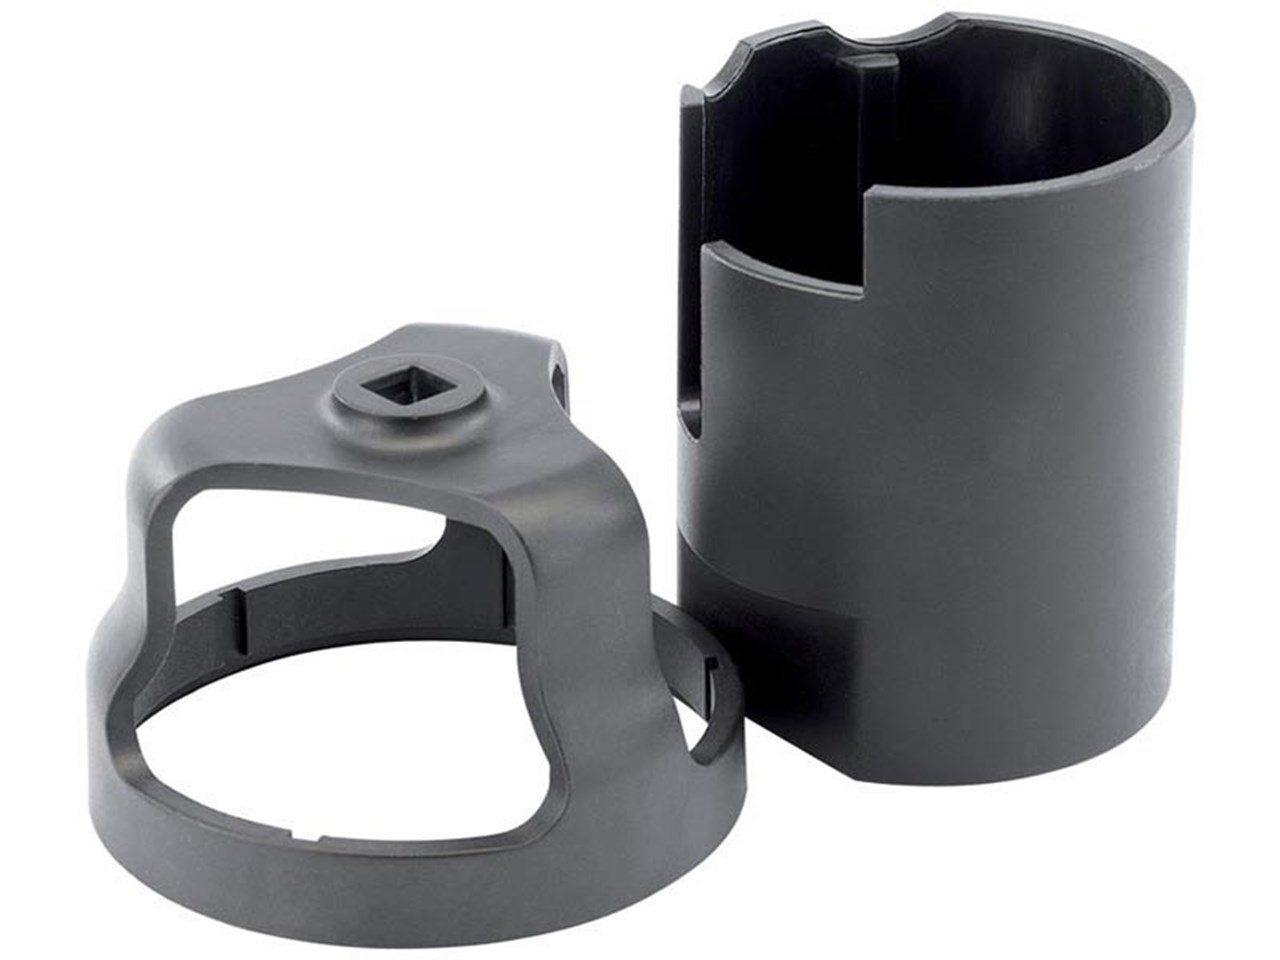 Draper 38601 Expert Two Piece Diesel Fuel Filter Tool Wrench